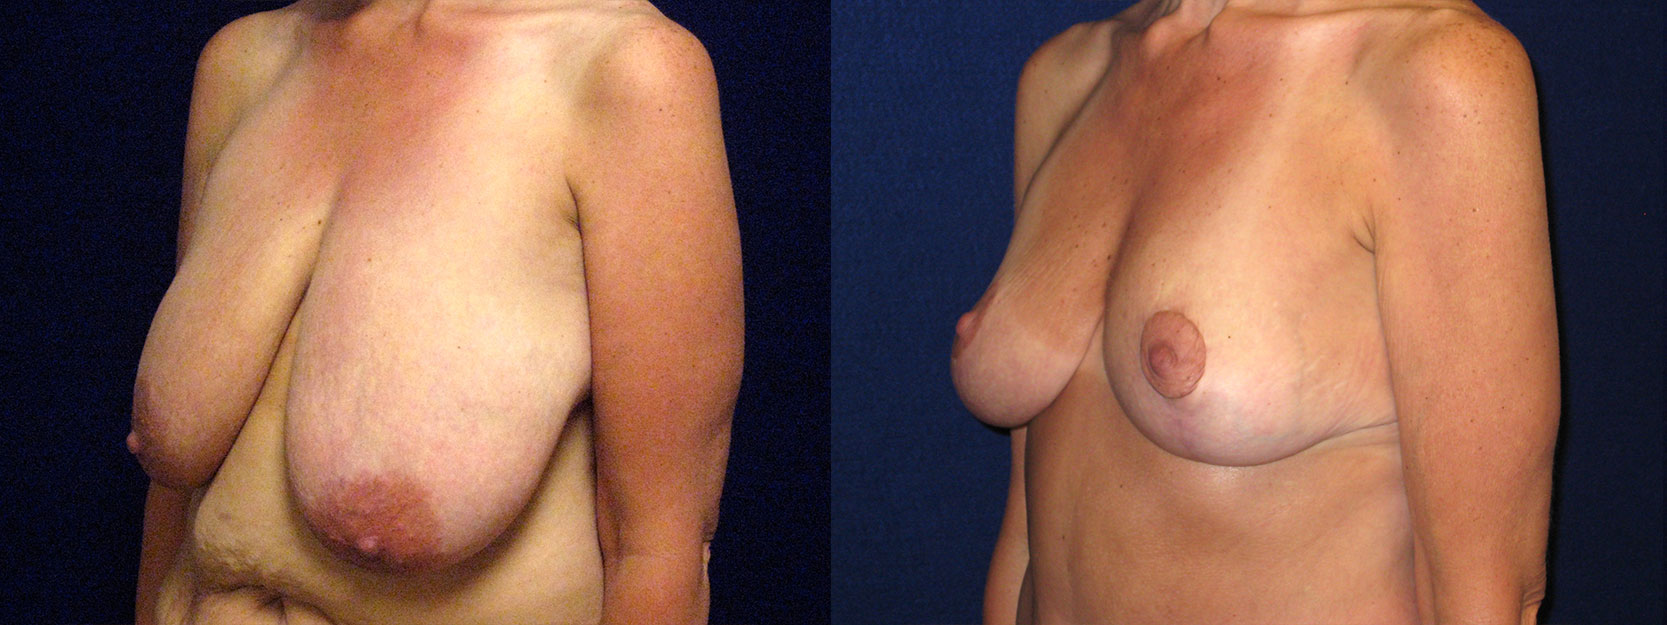 Left 3/4 View - Breast Lift Reduction